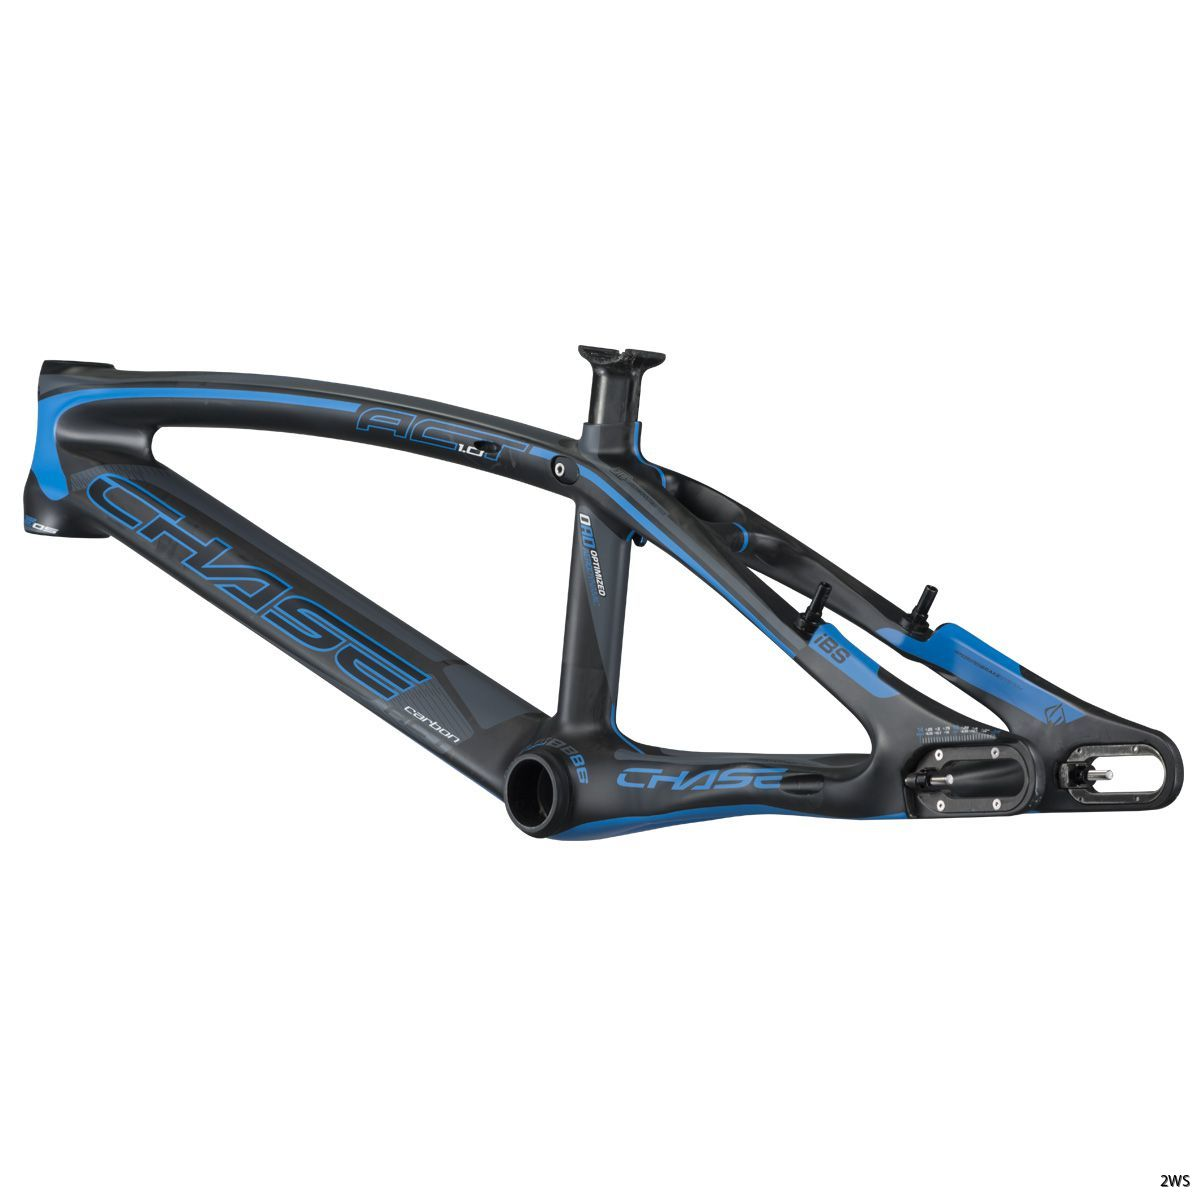 chase-act10-frame-matt-black-blue (2)